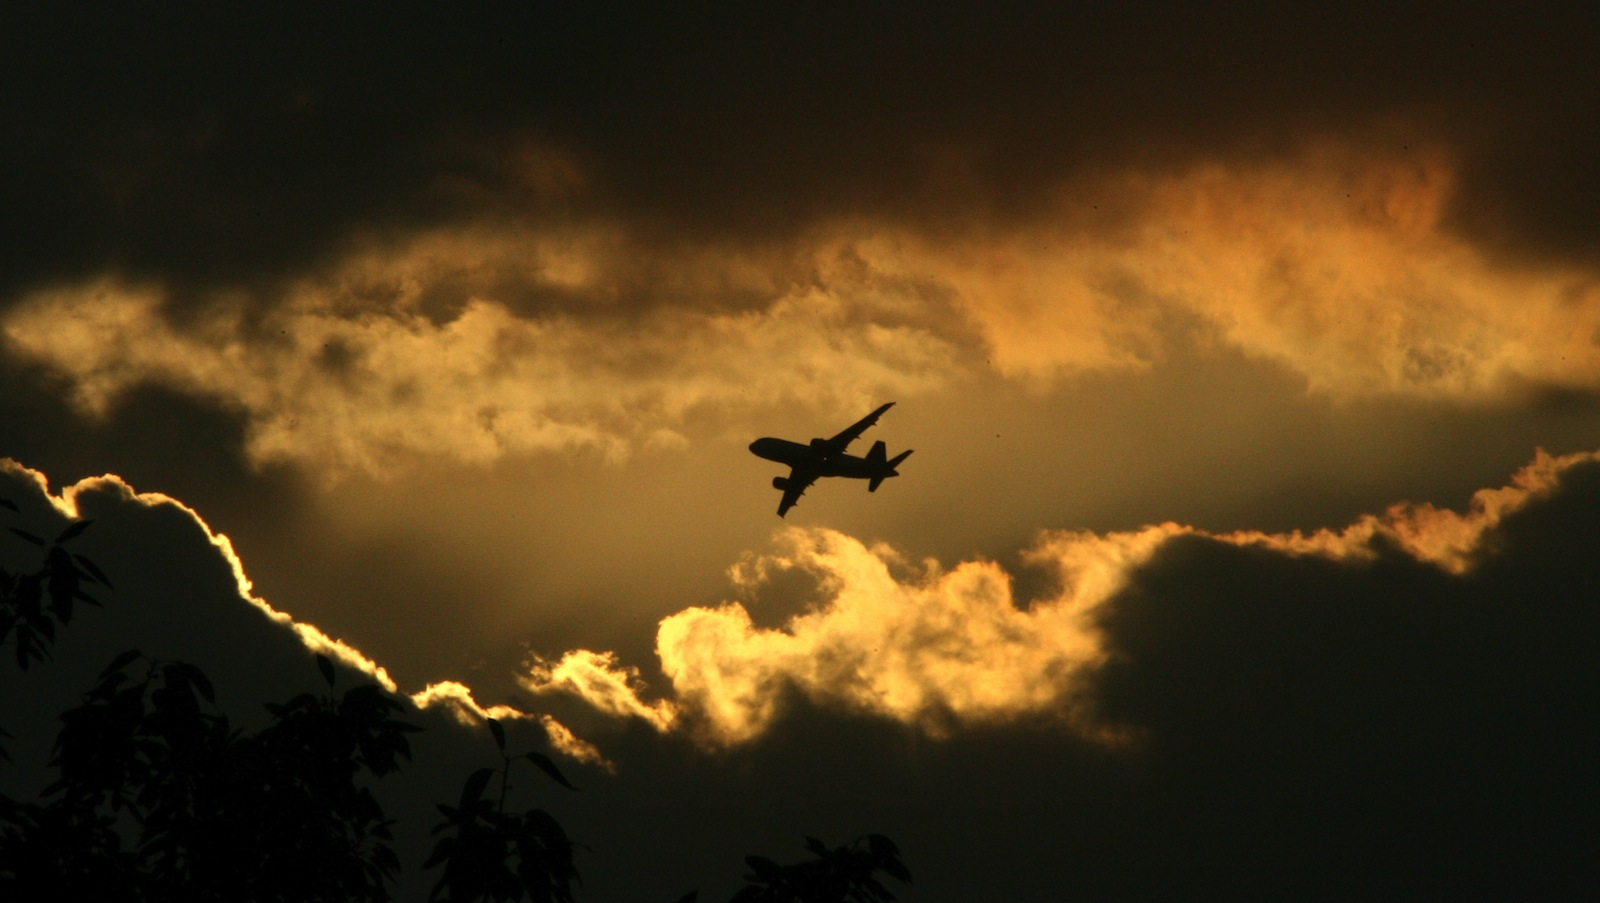 An aircraft flies against the backdrop of pre-monsoon clouds in New Delhi July 6, 2006. Monsoon rains in India kill hundreds of people, damage homes and destroy crops almost every year.